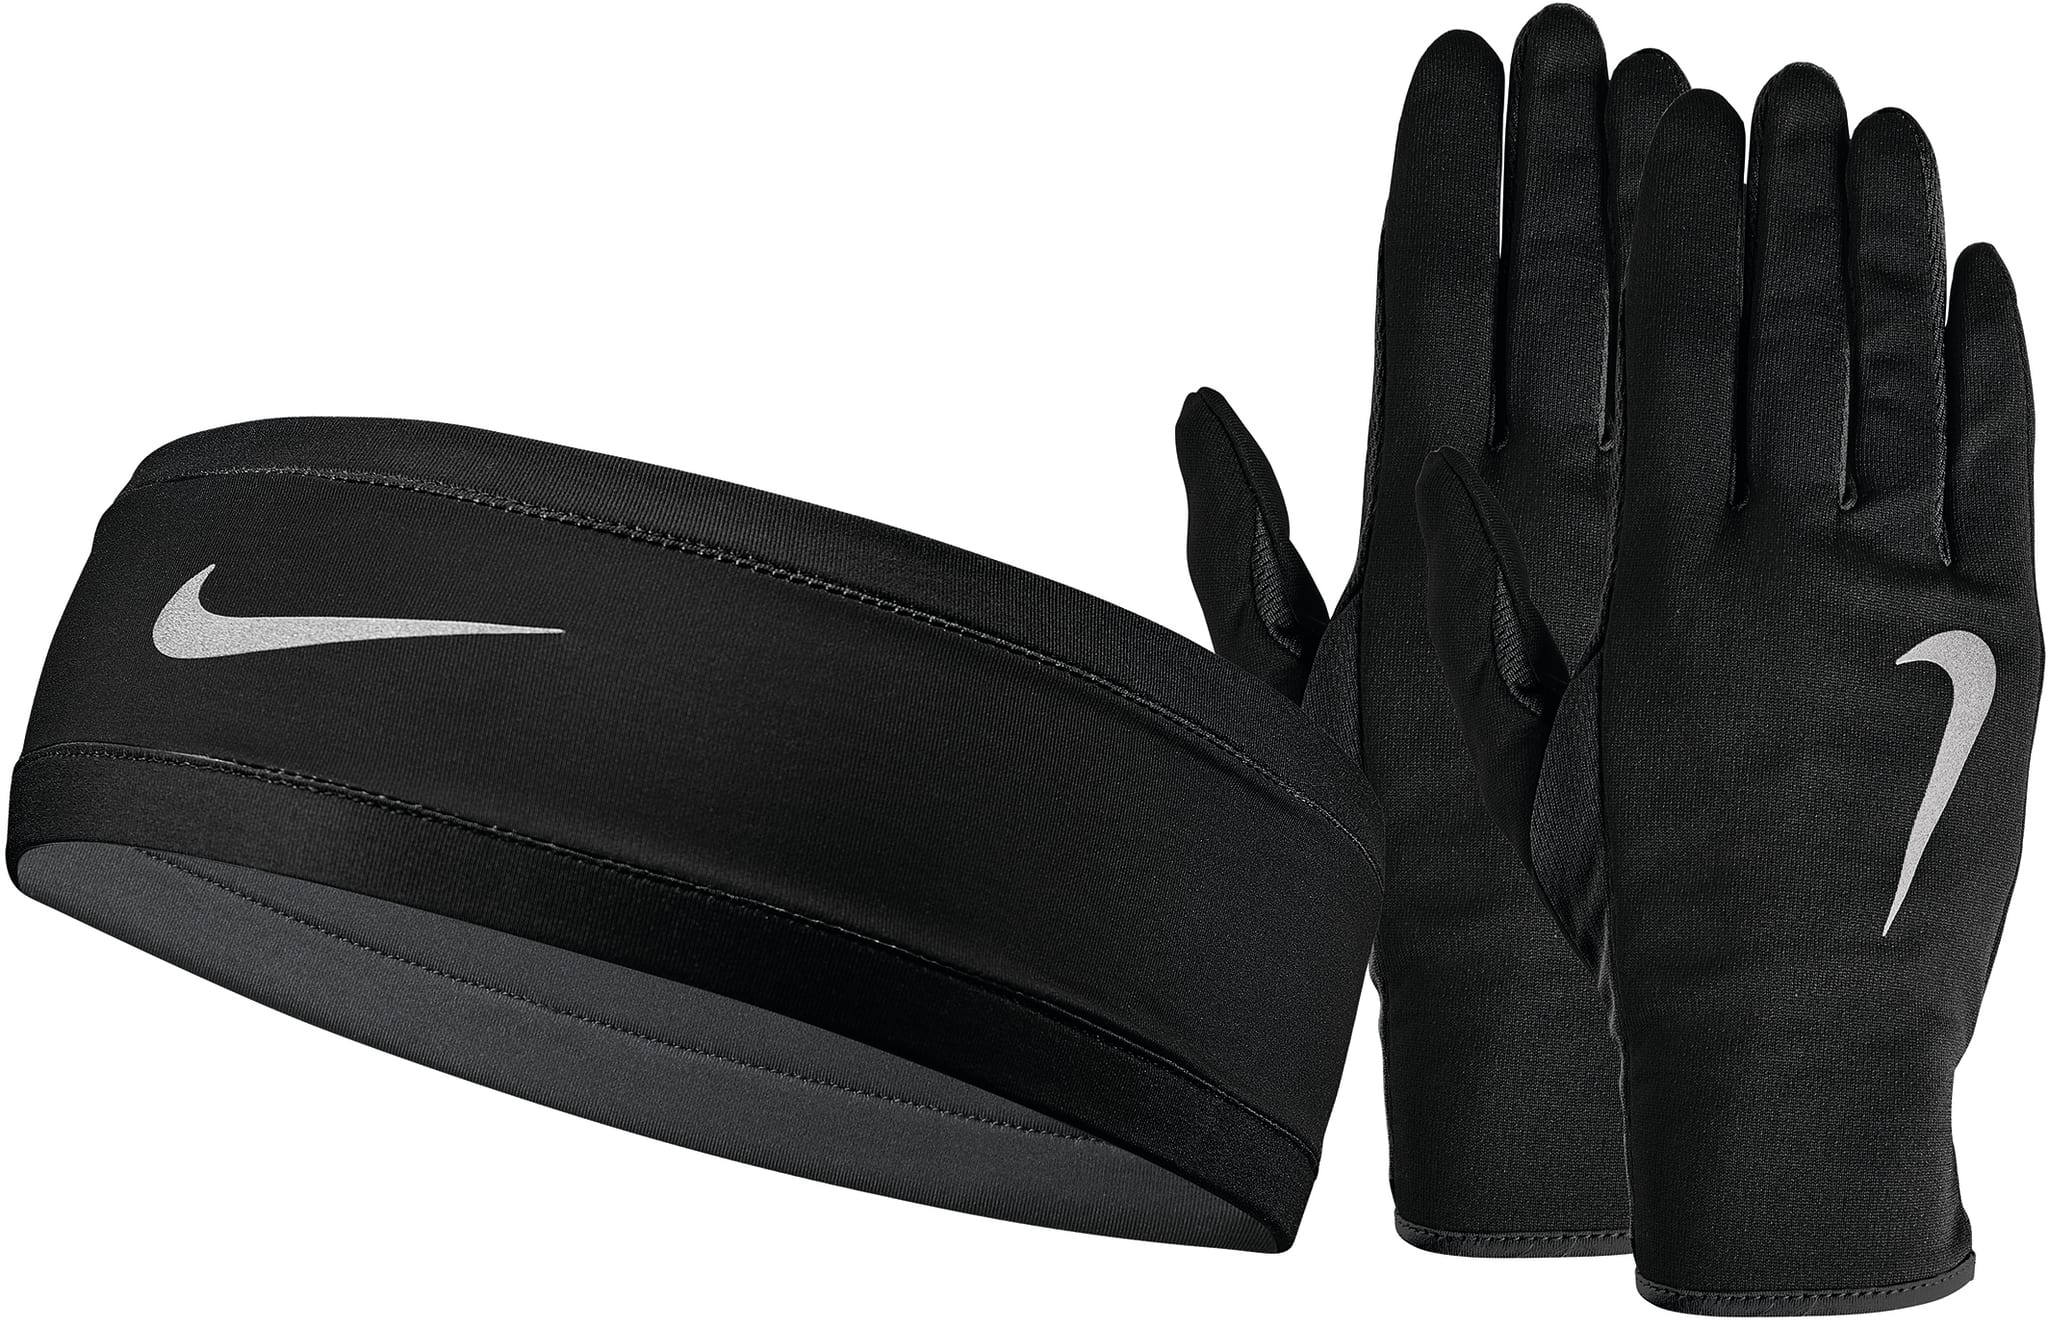 Run Dry Headband And Gloves Set W